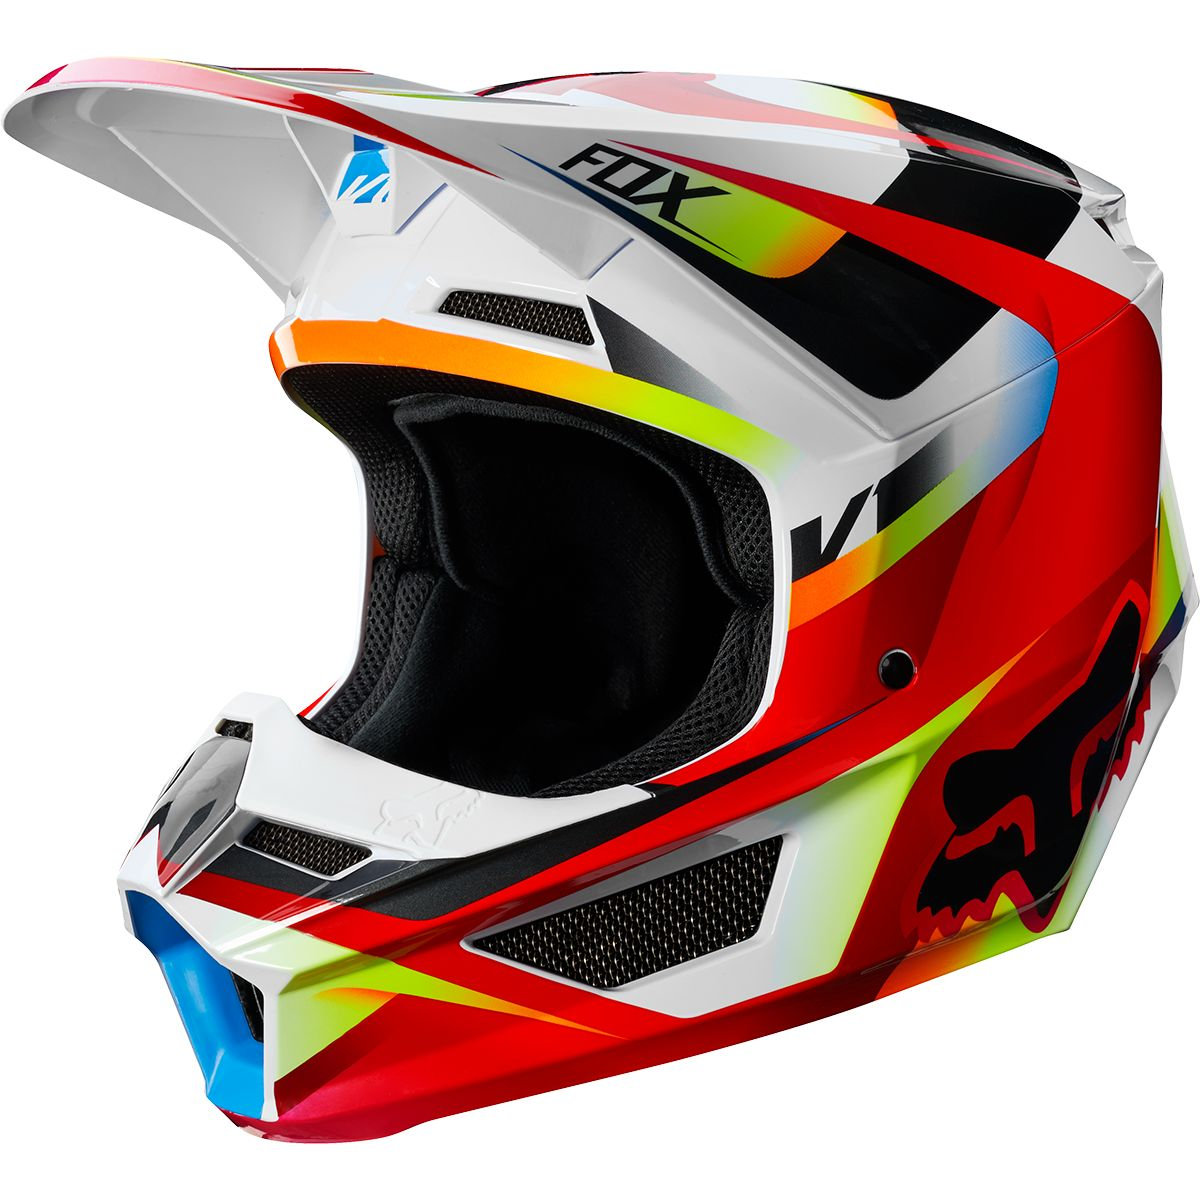 V1 MTB full face helmet